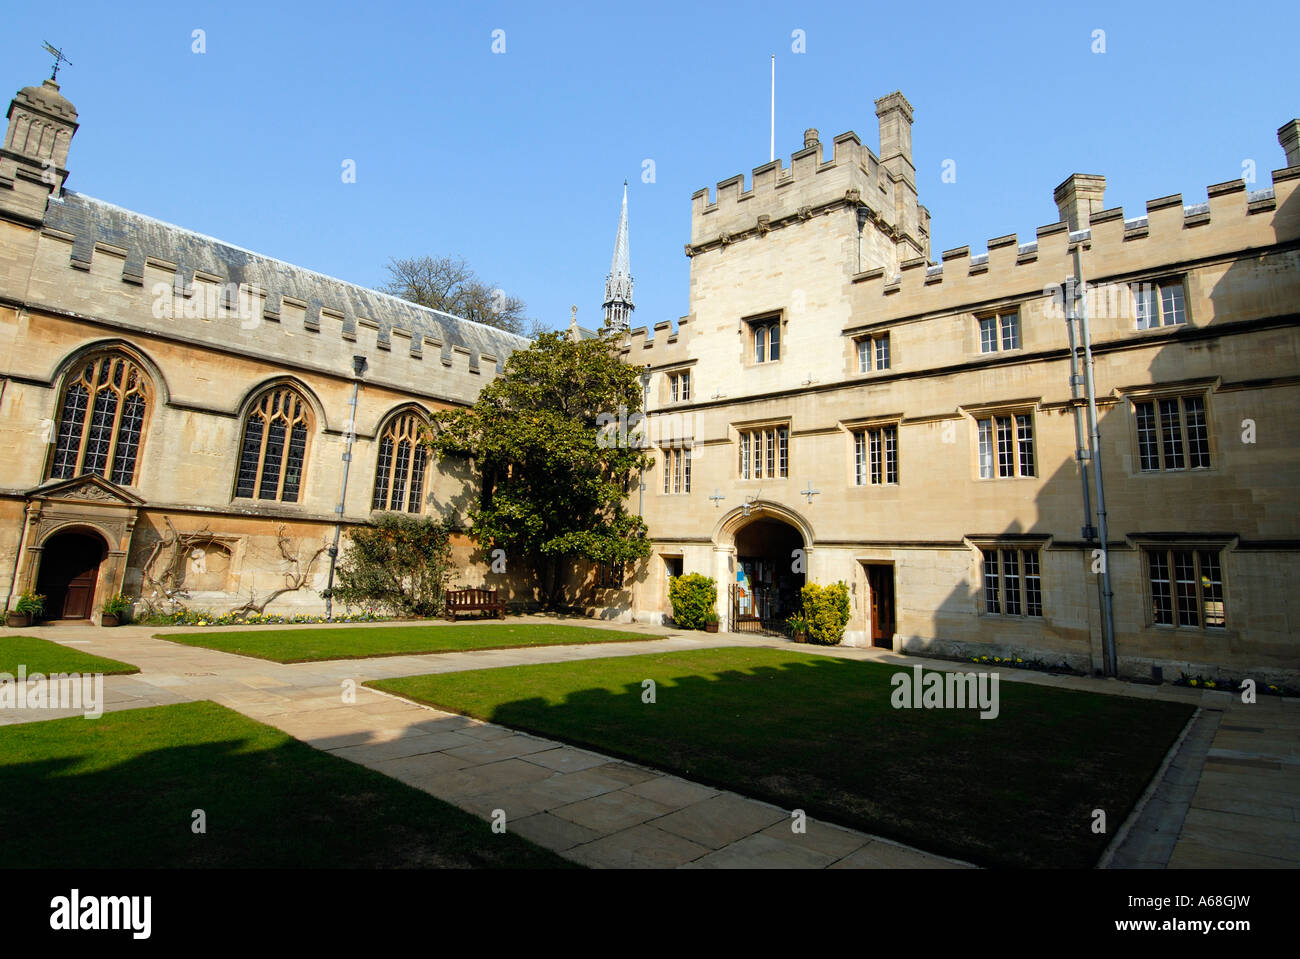 Jesus College Front Quad and Gatehouse Oxford - Stock Image